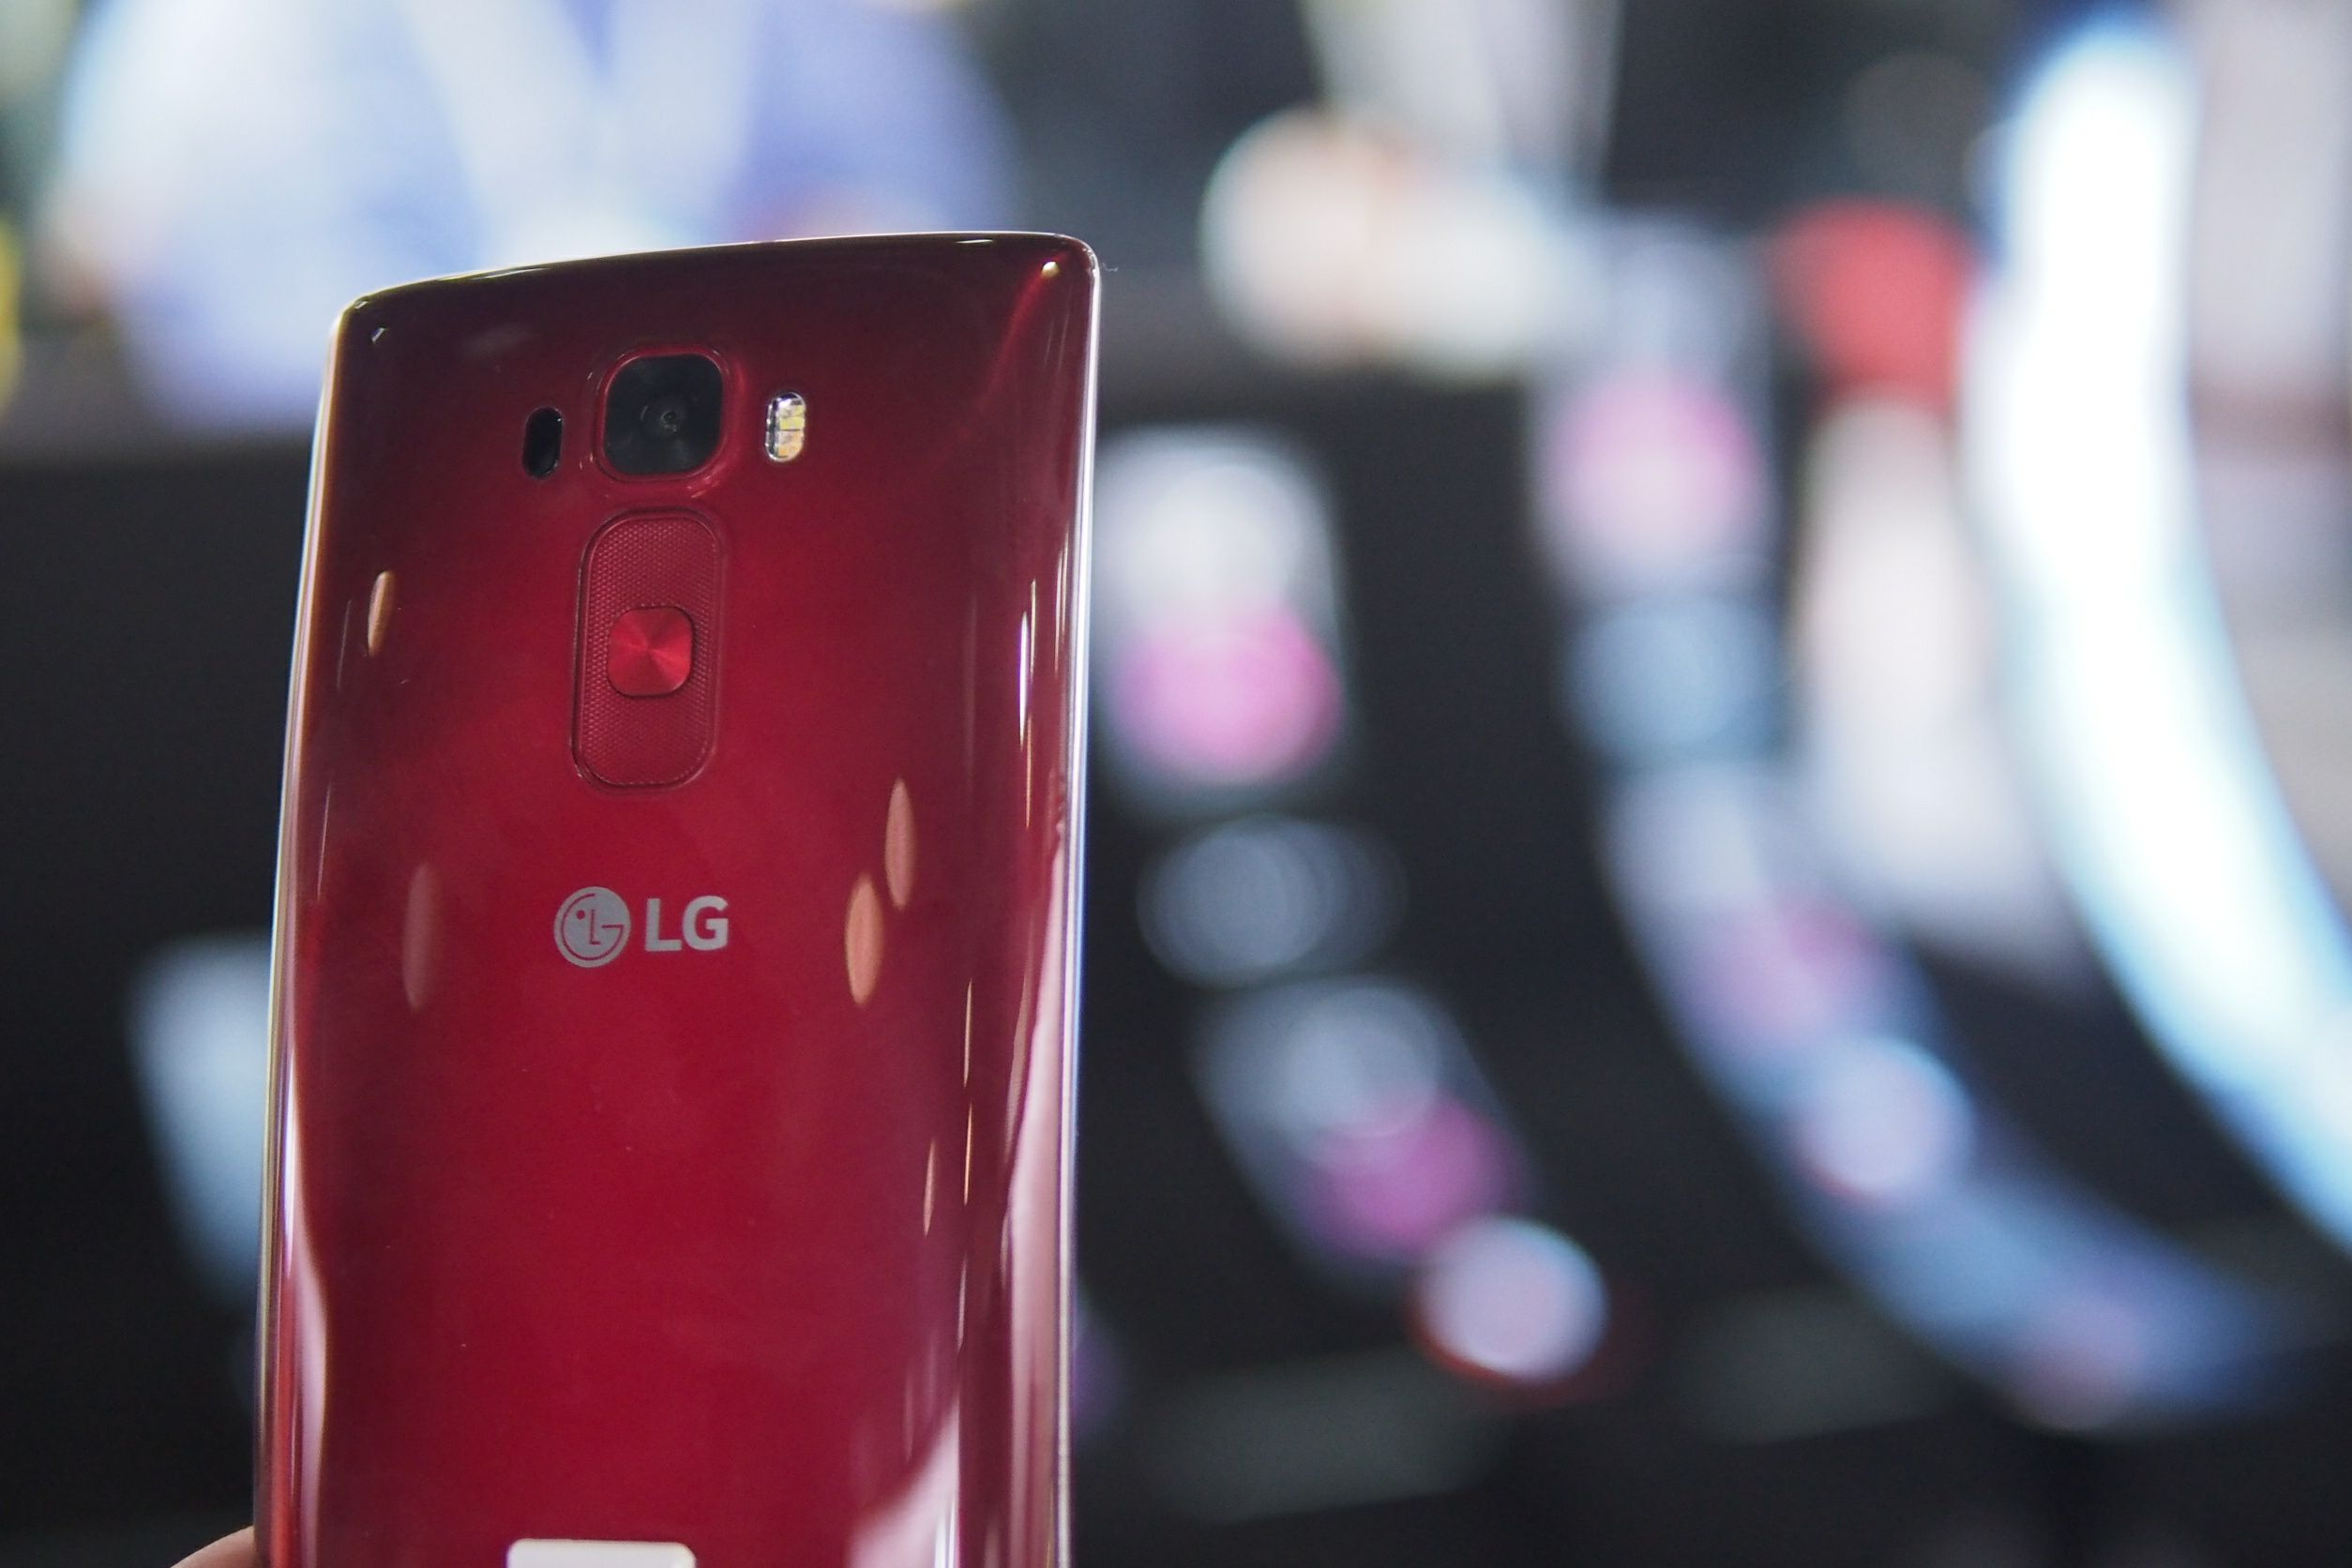 th CES 2015 being all about curved displays, let's not forget the LG line that started it all. We got some hands on time with the new G Flex 2 on the CES show floor, and the phone is as quirky as ever...